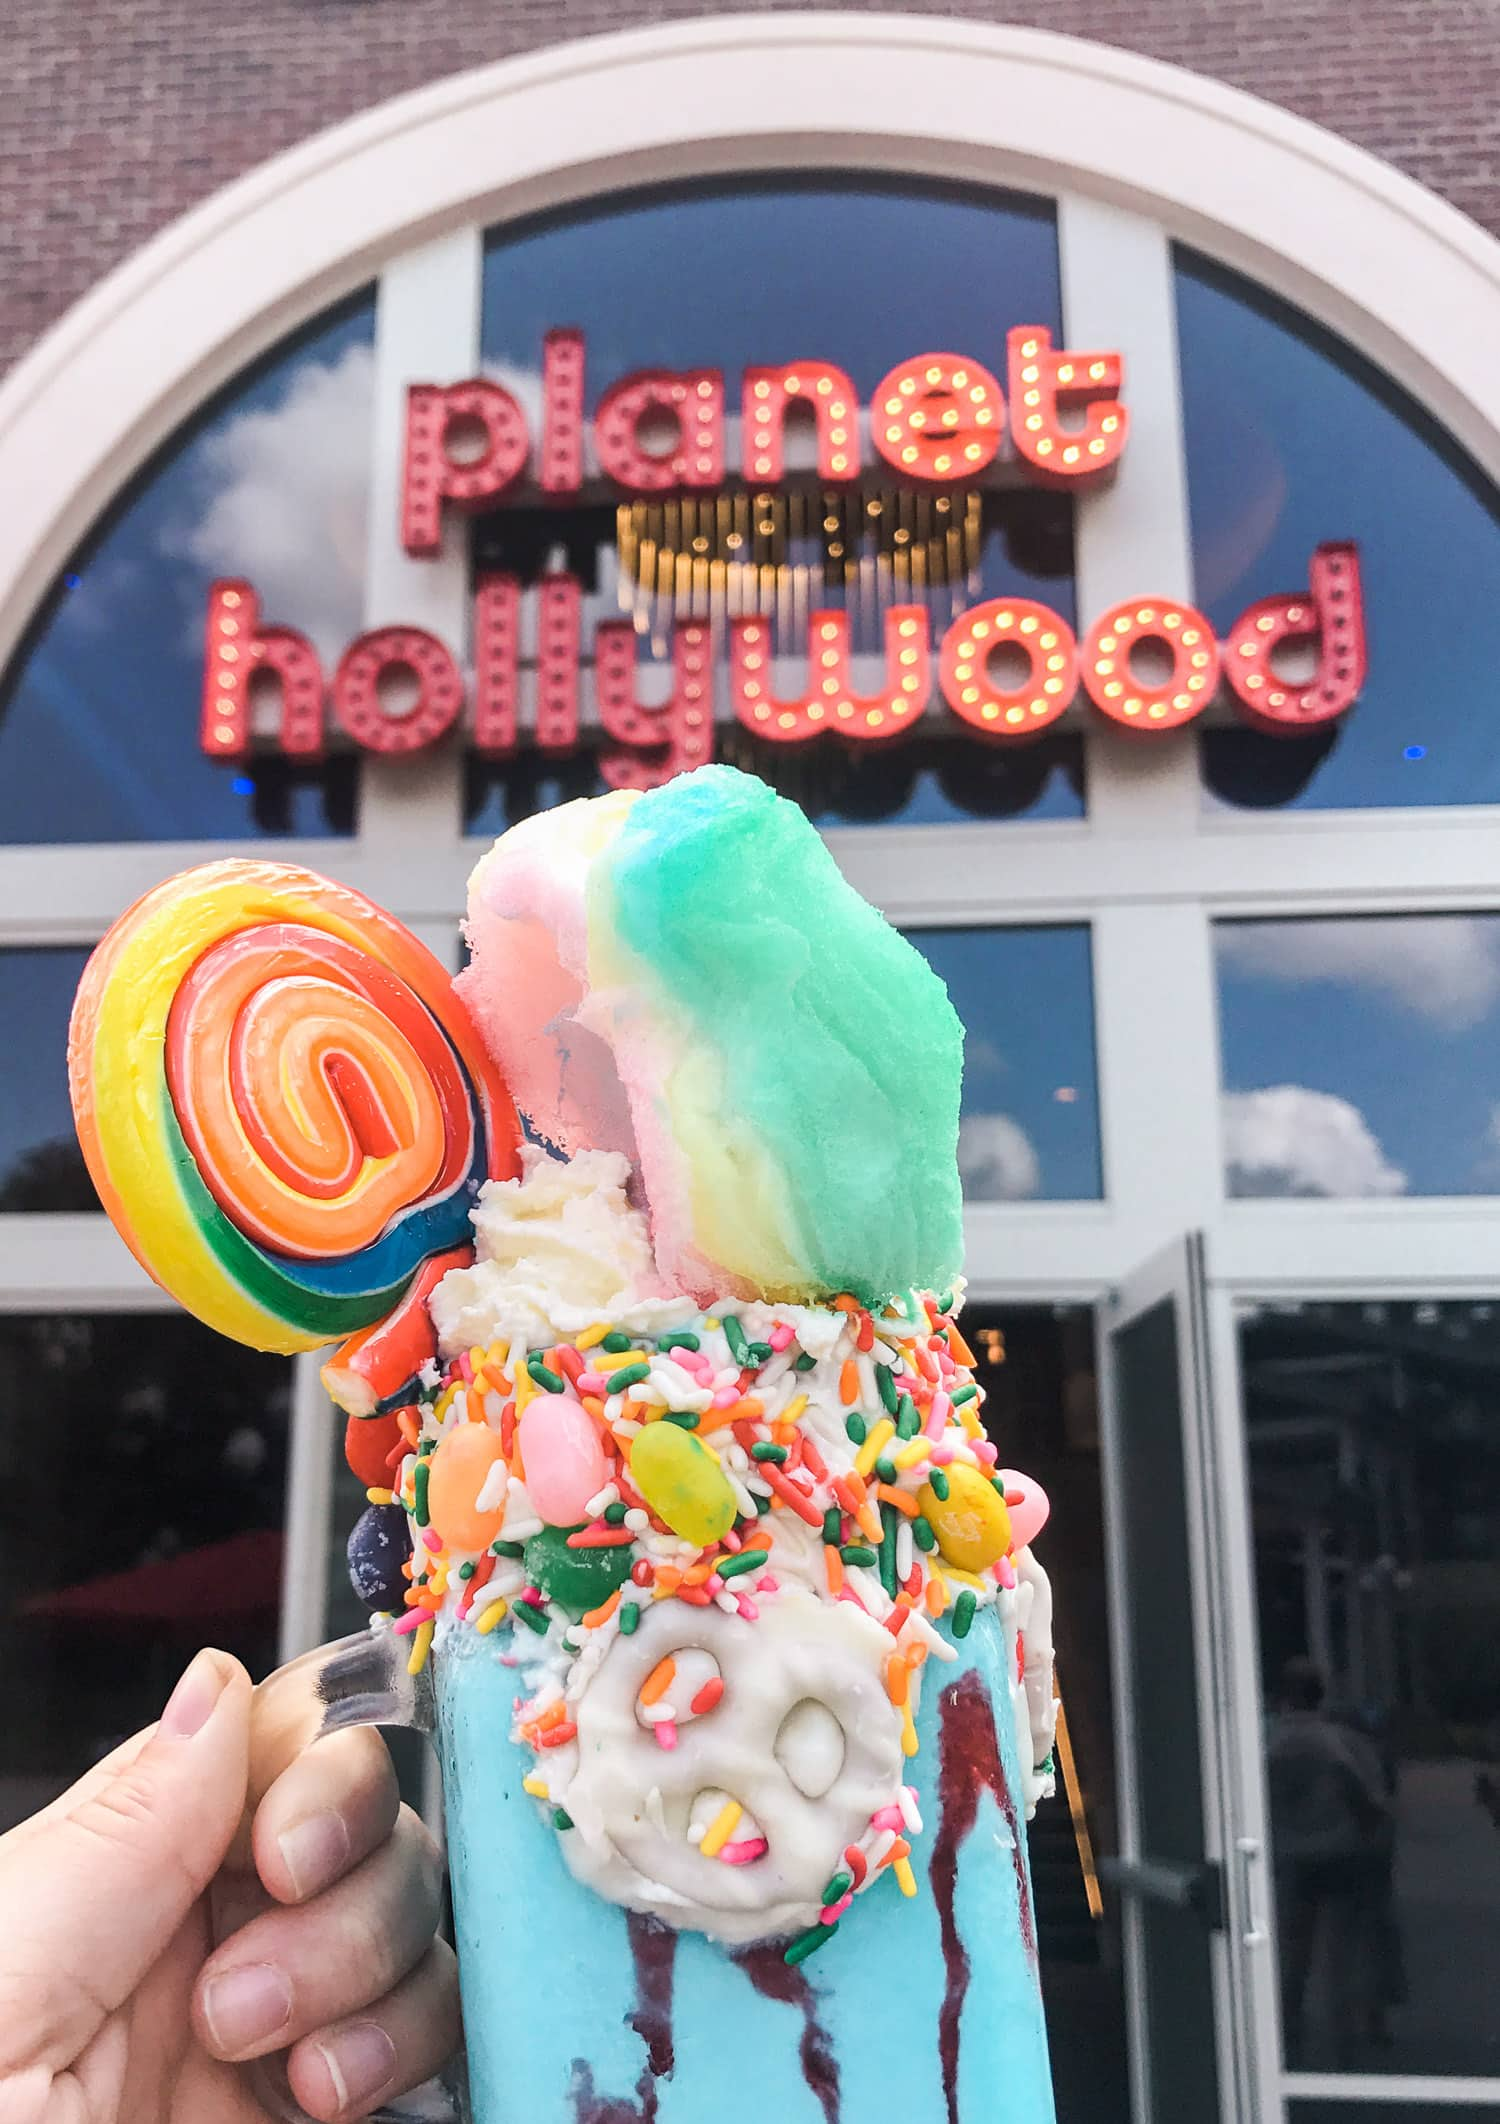 Crazy milkshake with cotton candy and lollipops at Planet Hollywood in Disney Springs | Disney Springs is one of my all-time favorite places to go in Orlando! Planning a trip to Orlando? I've rounded up the top 10 things to do in Orlando, Florida, that are guaranteed to make your trip a success. Whether you're moving to Orlando or just headed in on vacation, you will LOVE this list of fun activities in Orlando by Florida travel blogger Ashley Brooke Nicholas #CORTatHome sponsored by CORT Furniture | affordable travel tips, orlando vacation tips, vacation tips, disney vacation, walt